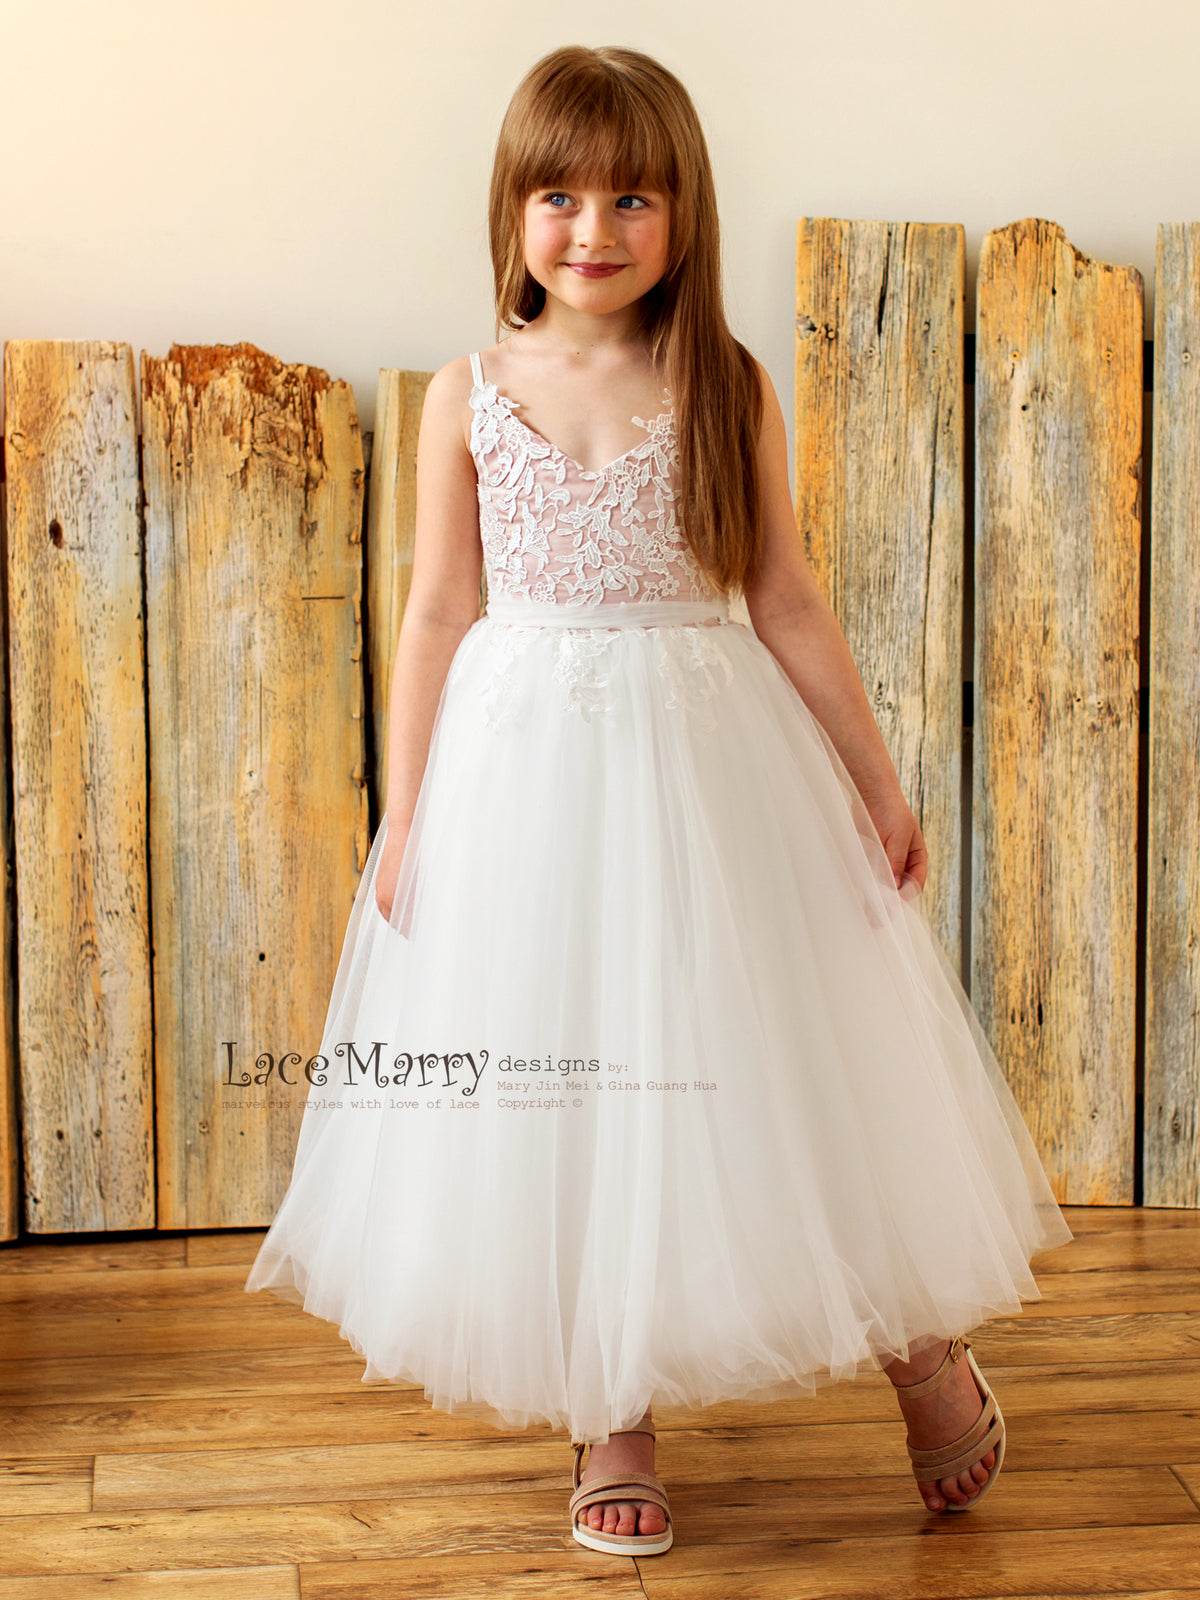 Sweet Flower Girl Dress for Rustic Wedding